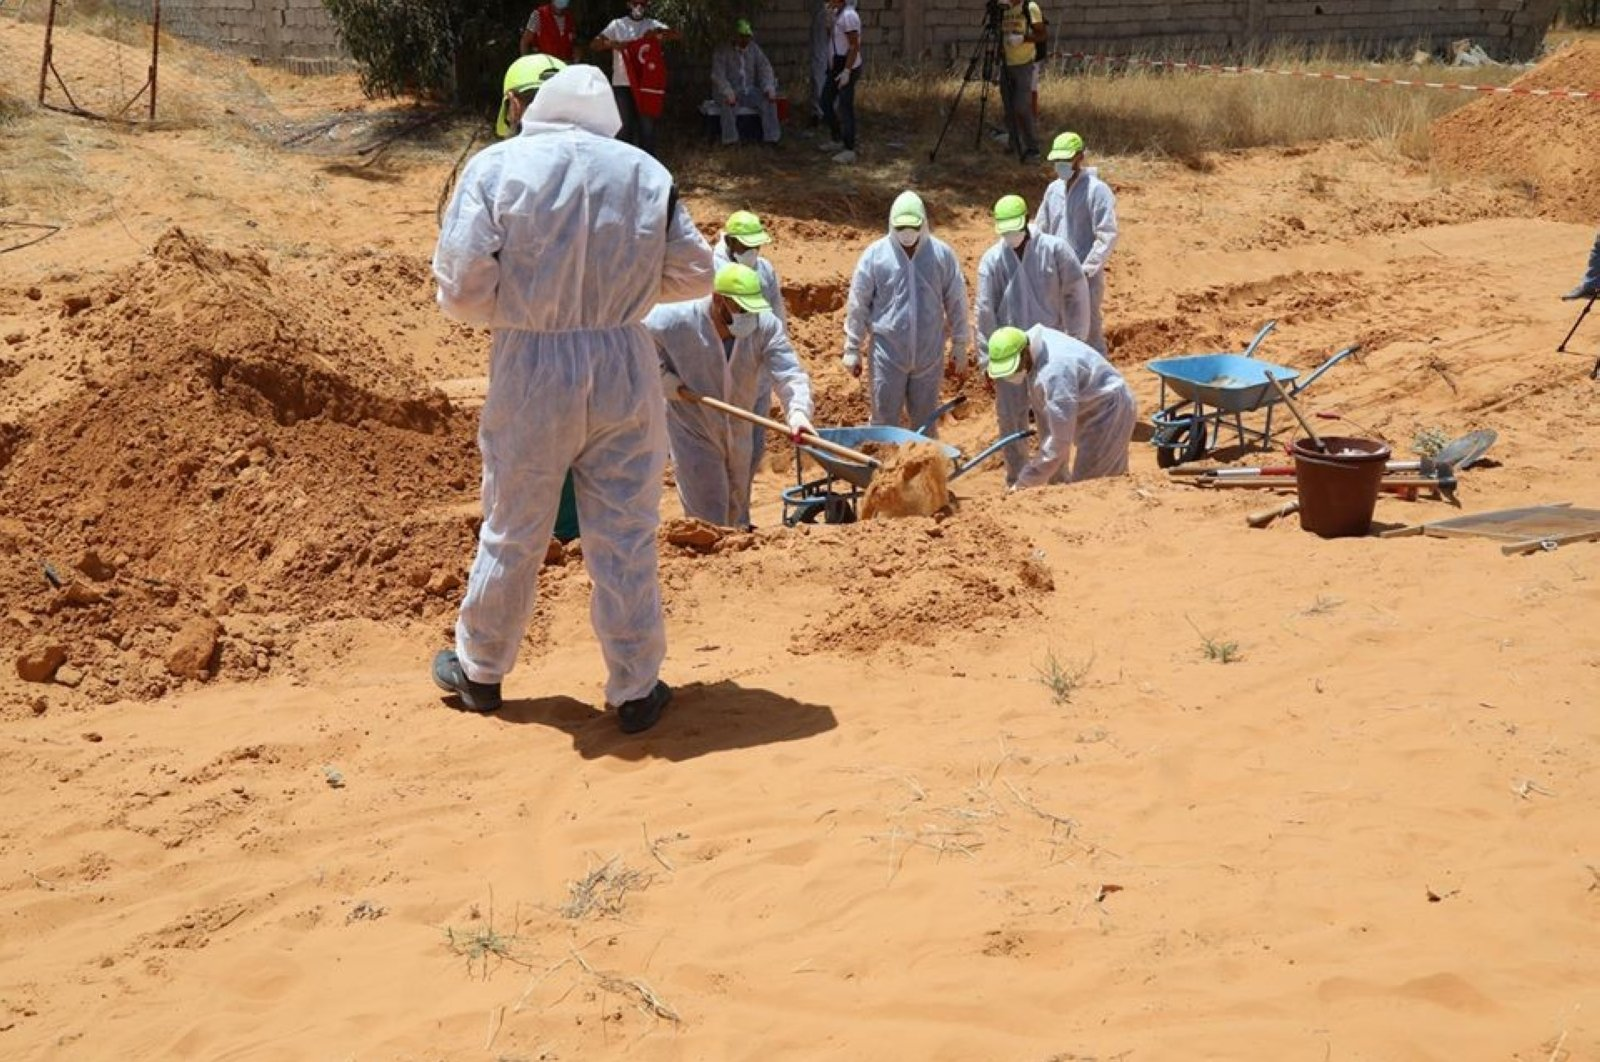 Mass graves were found in Libya's Tarhuna province where Haftar militias dumped bodies prior to the province's liberation, June 11, 2020. (IHA Photo)